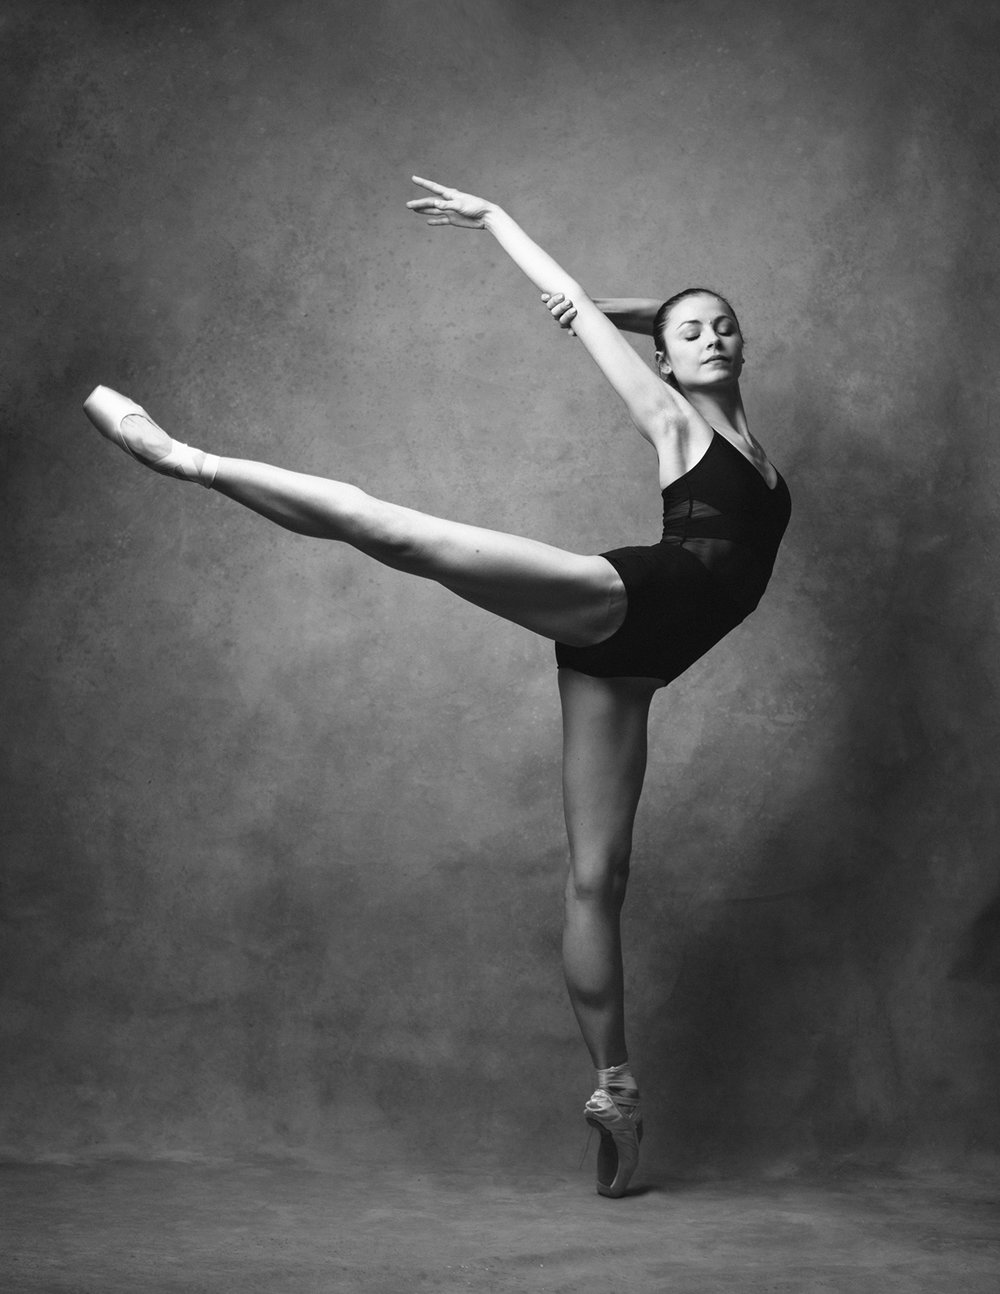 Hannah Williams, BC Ambassador for the Dutch National Ballet modelling the Chelsy No. 17 leotard